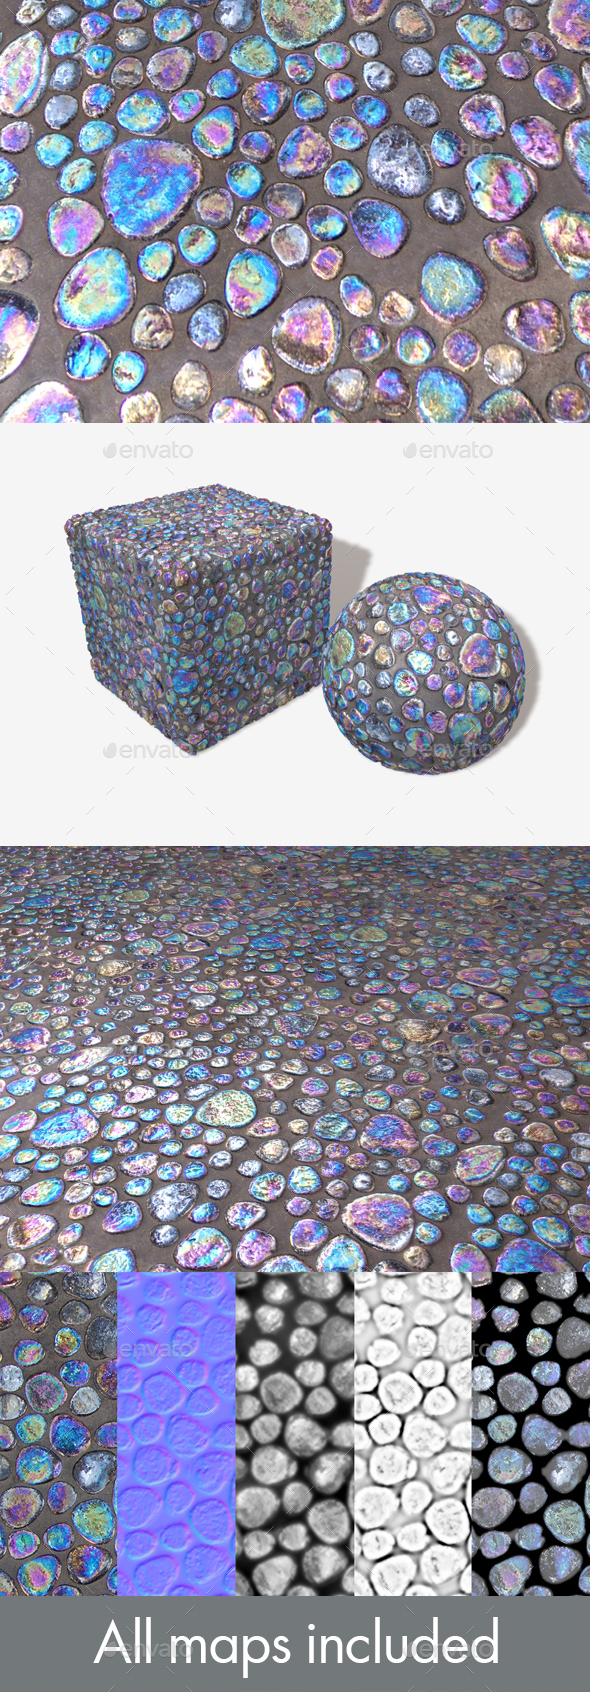 iridescent Pebble Tiles Seamless Texture - 3DOcean Item for Sale